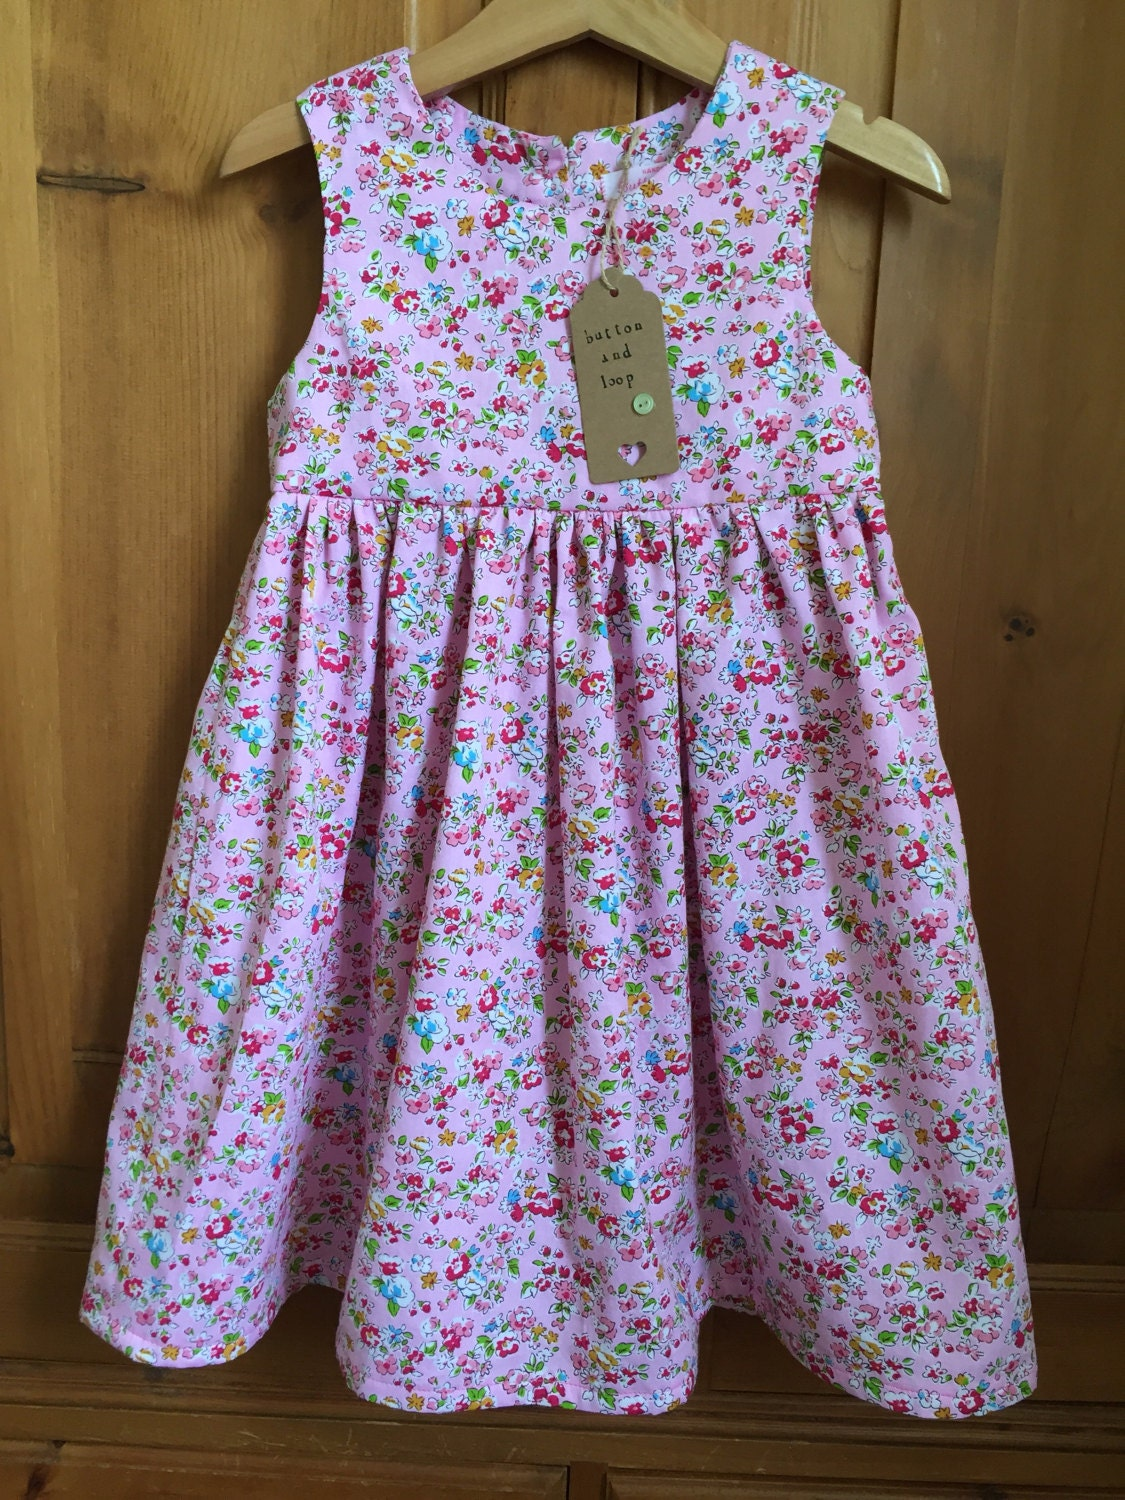 dresses girls dresses girls clothing party dresses occasion dresses pink dresses floral dresses girls party dress girls pink dress